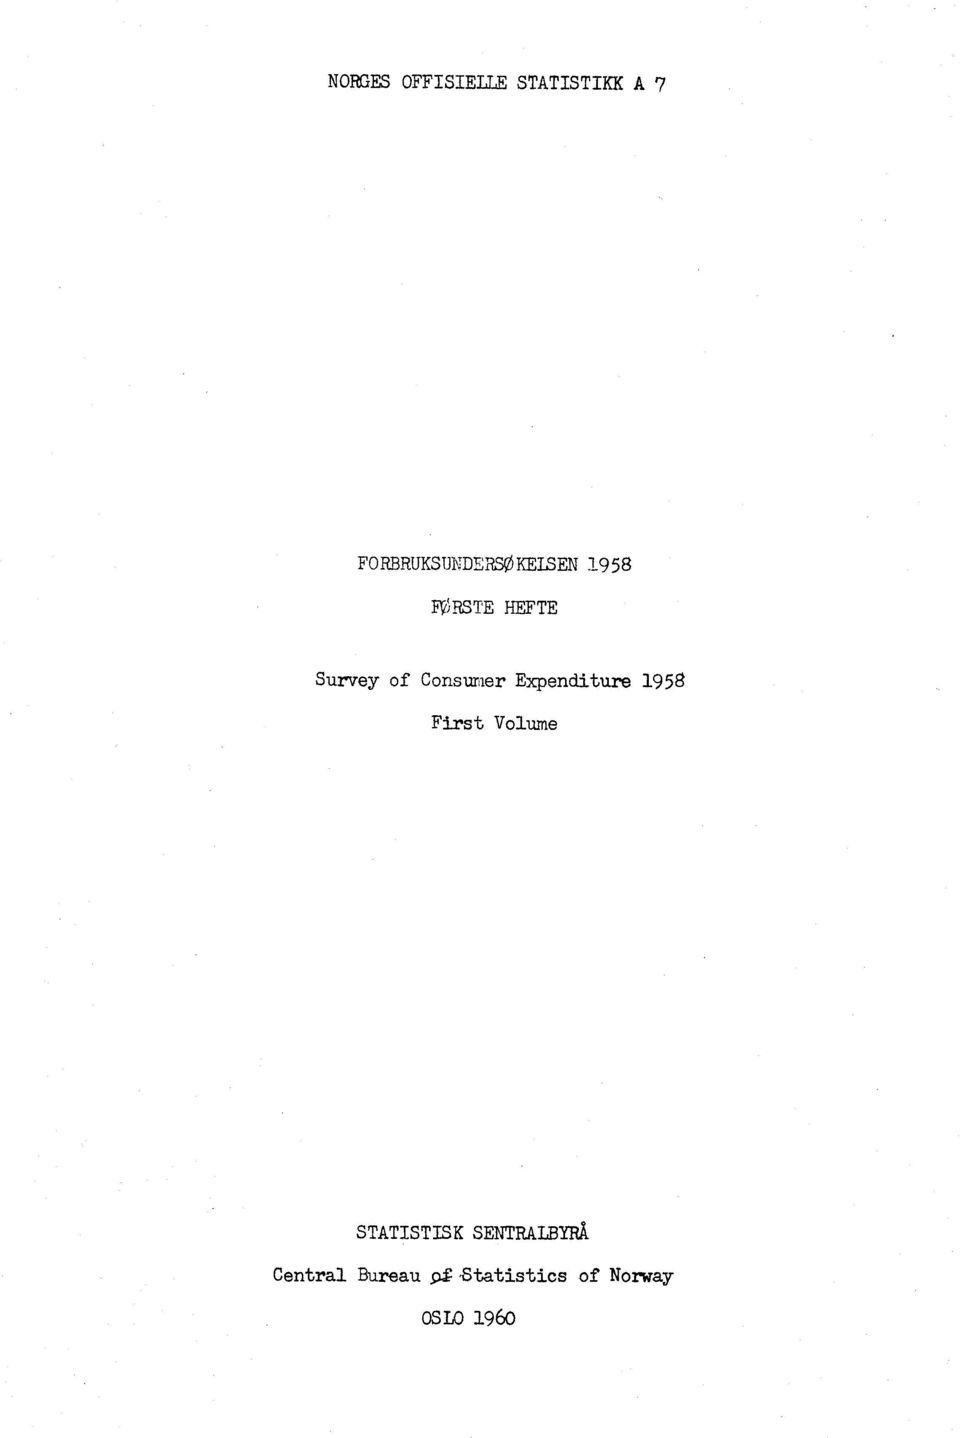 of Consumer Expenditure 1958 First Volume